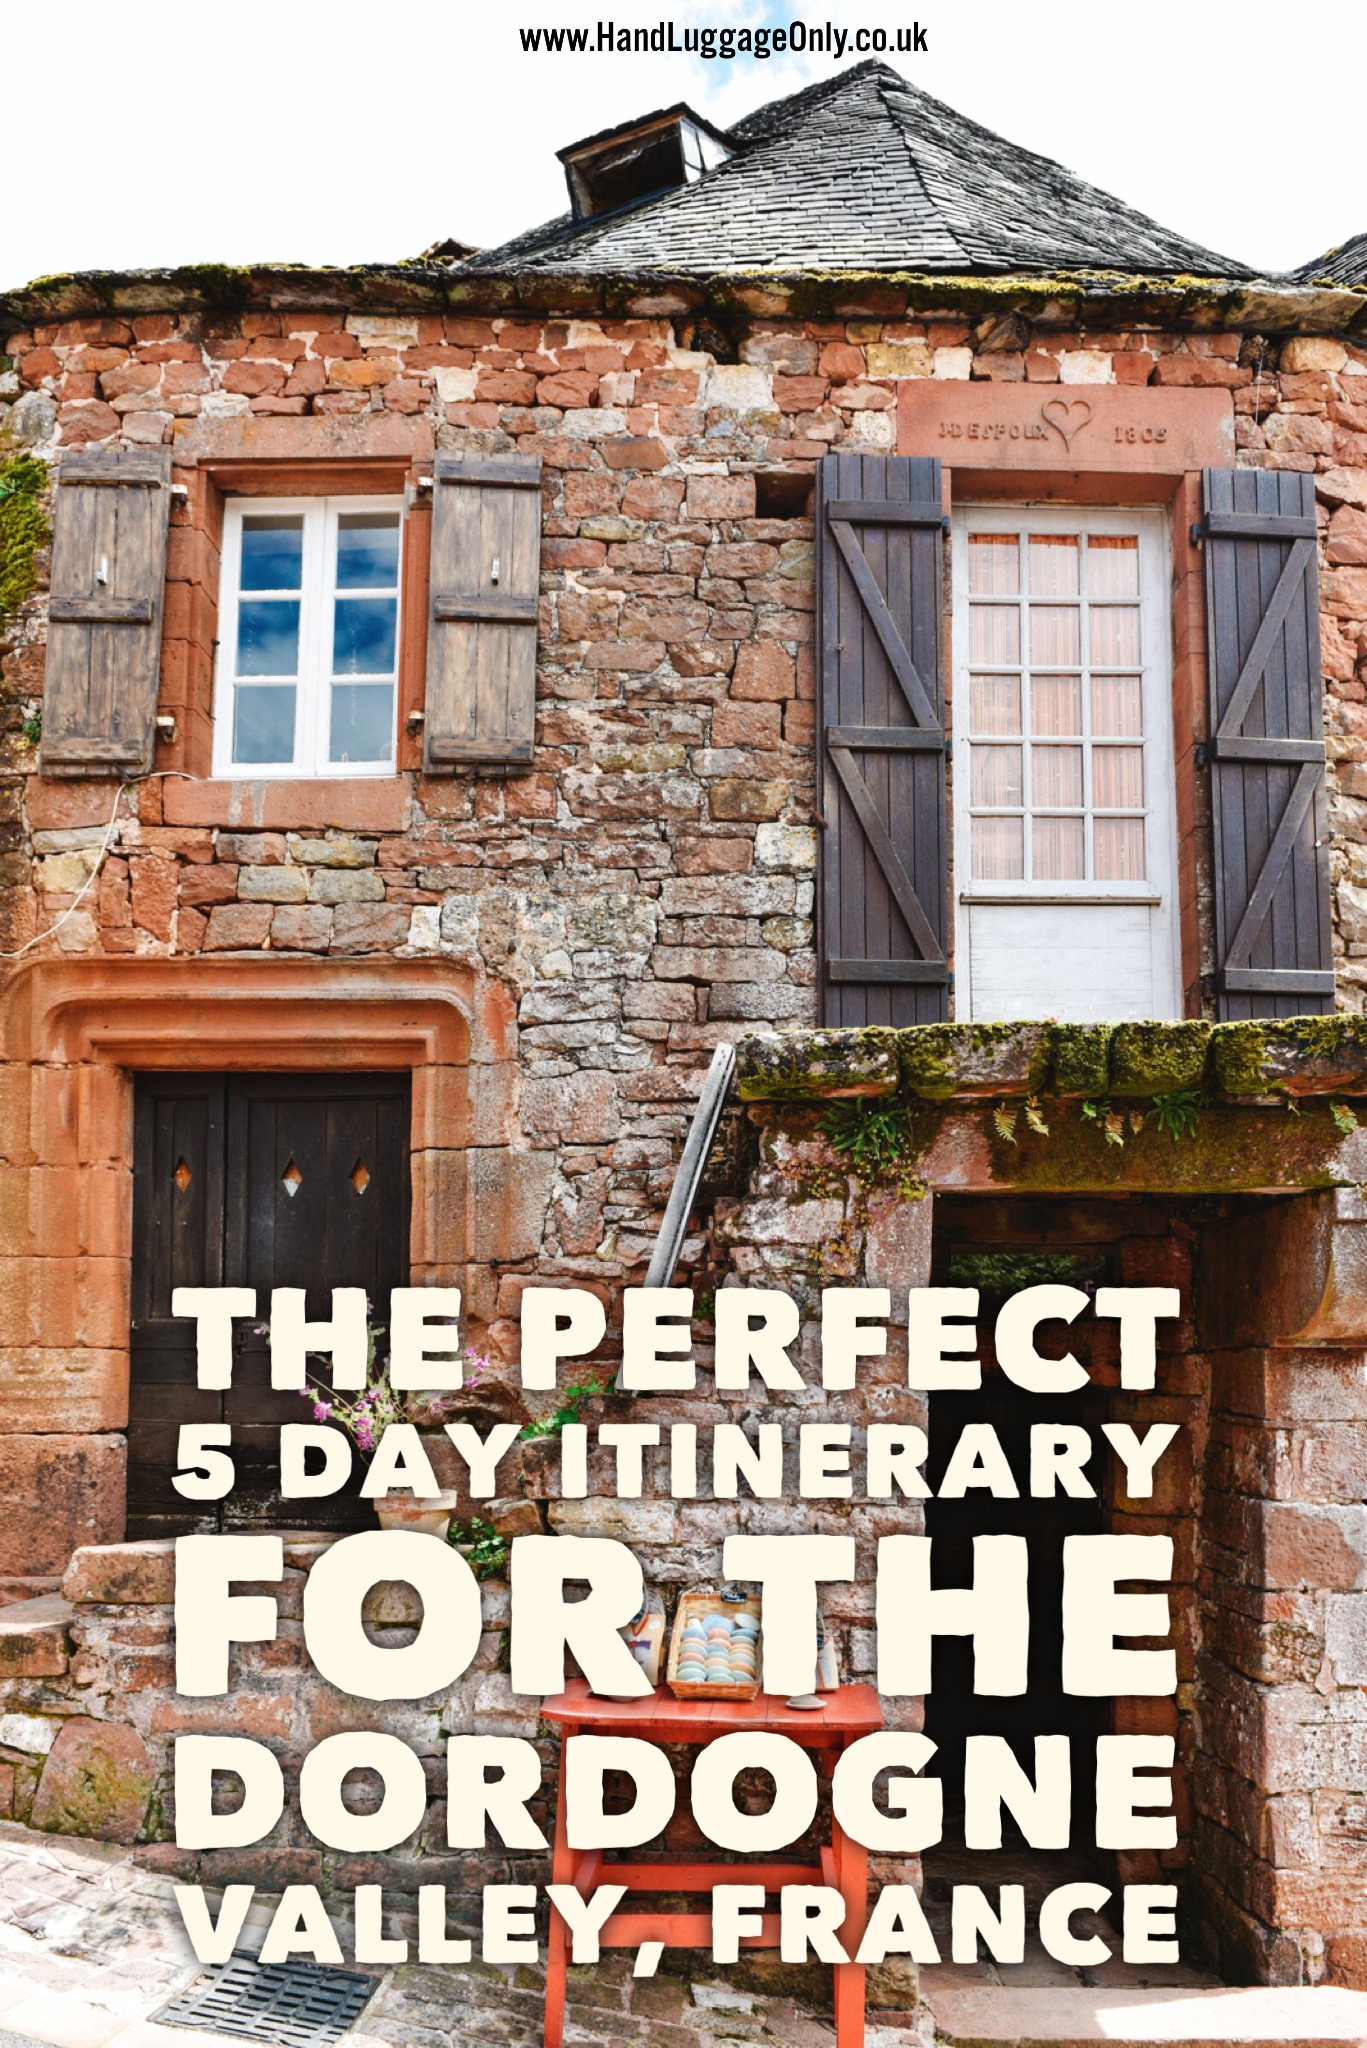 The Perfect 5 Day Travel Itinerary For The Dordogne Valley In France (1)